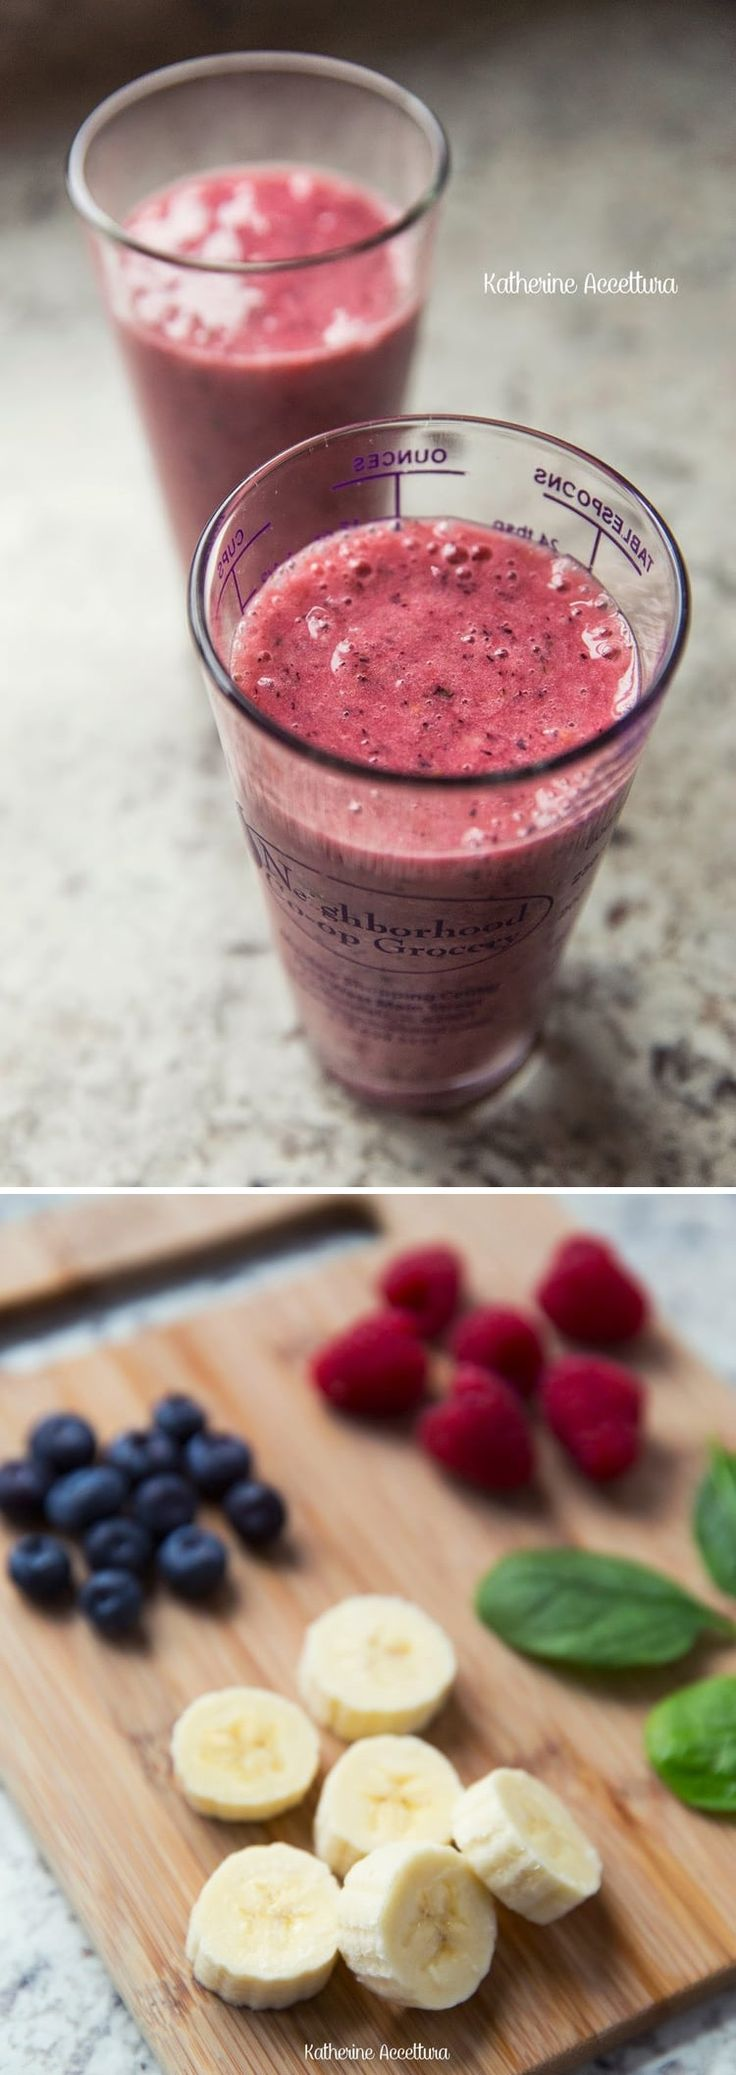 Awesome Smoothie Recipe